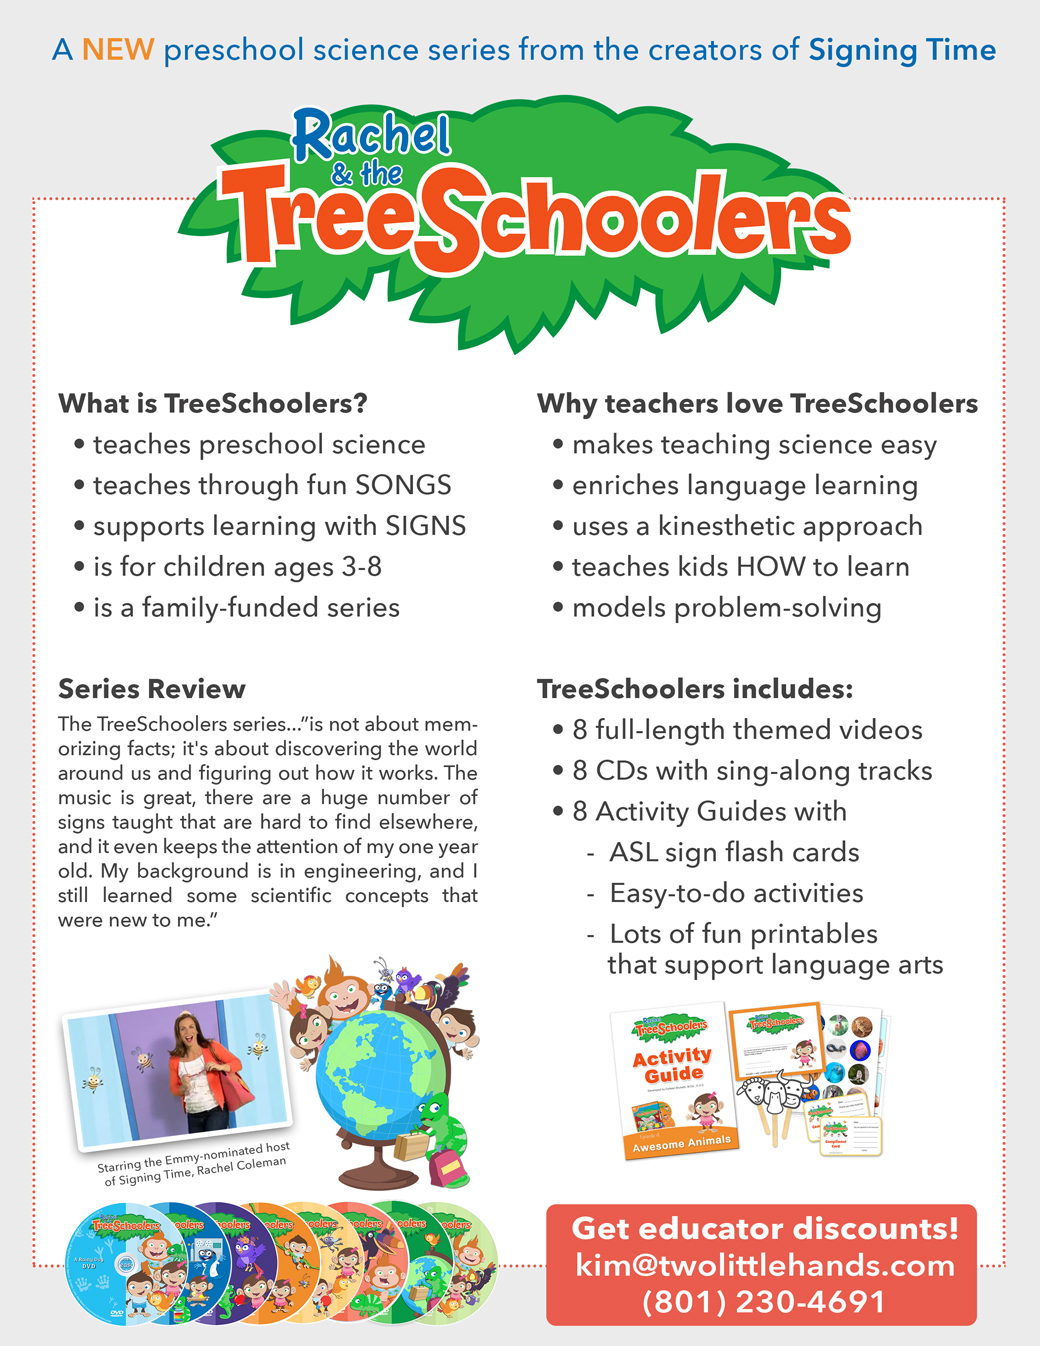 TreeSchoolers teaches science to kids